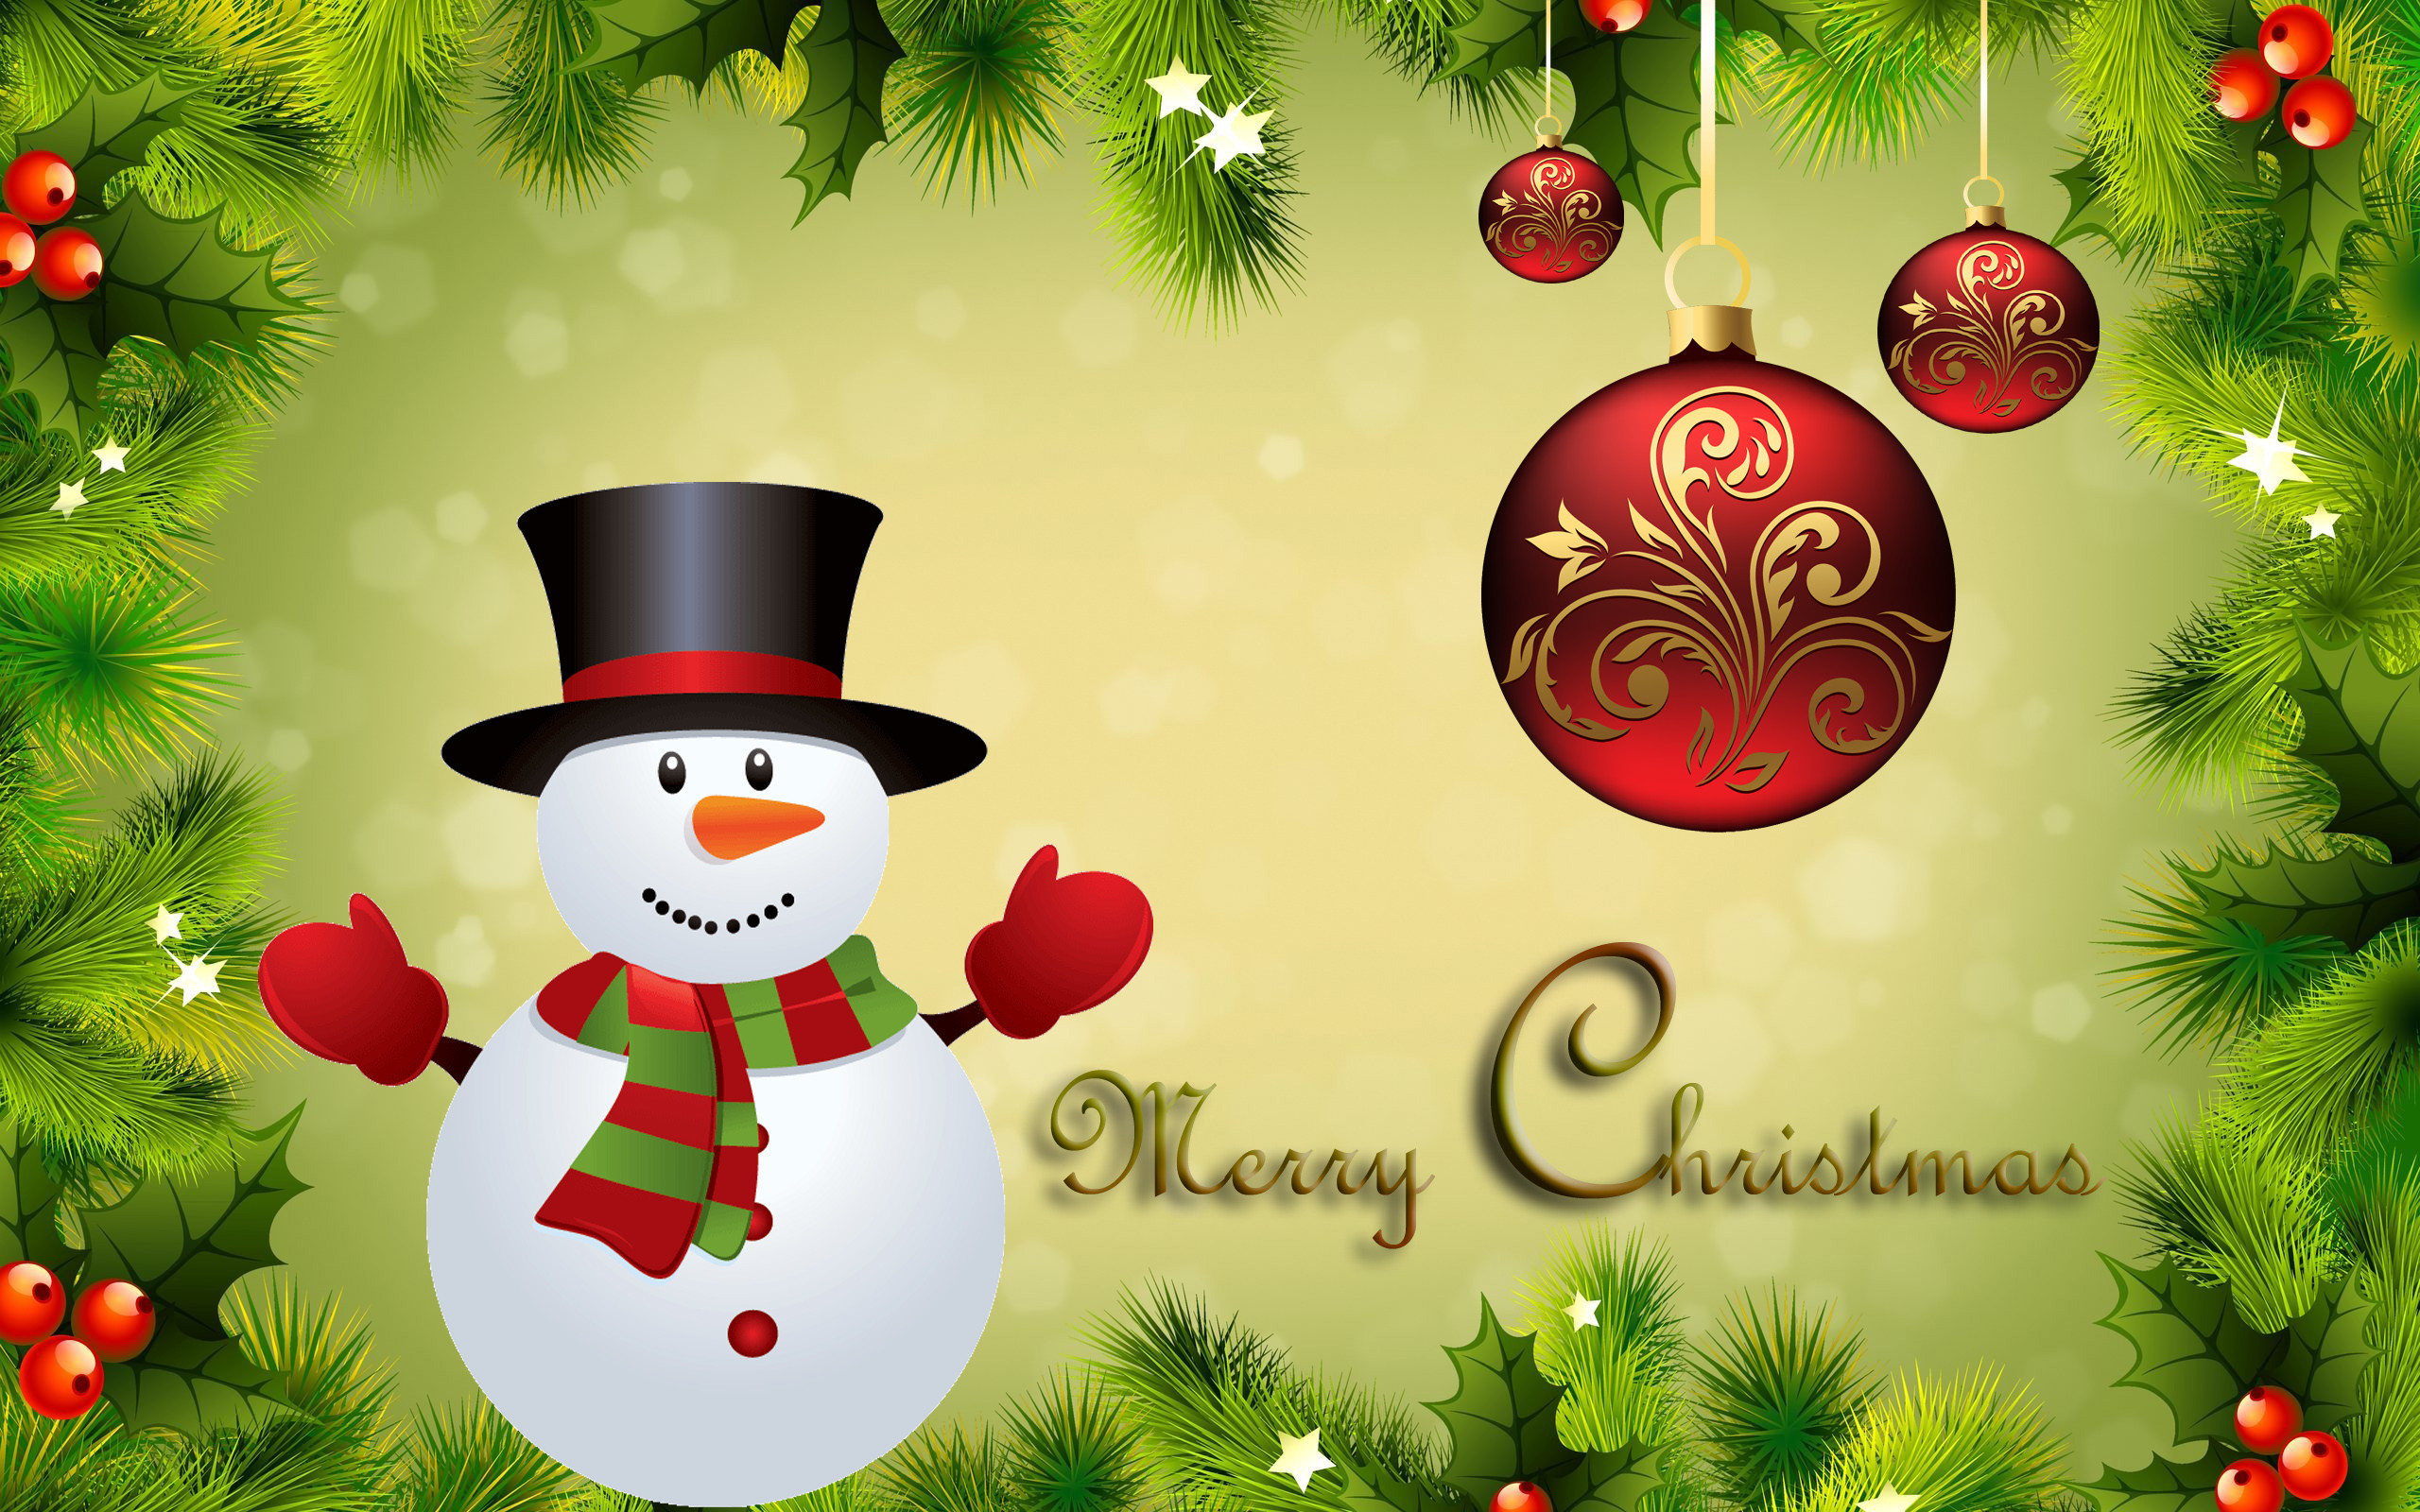 Cute christmas wallpaper desktop 62 images - Free christmas images for desktop wallpaper ...